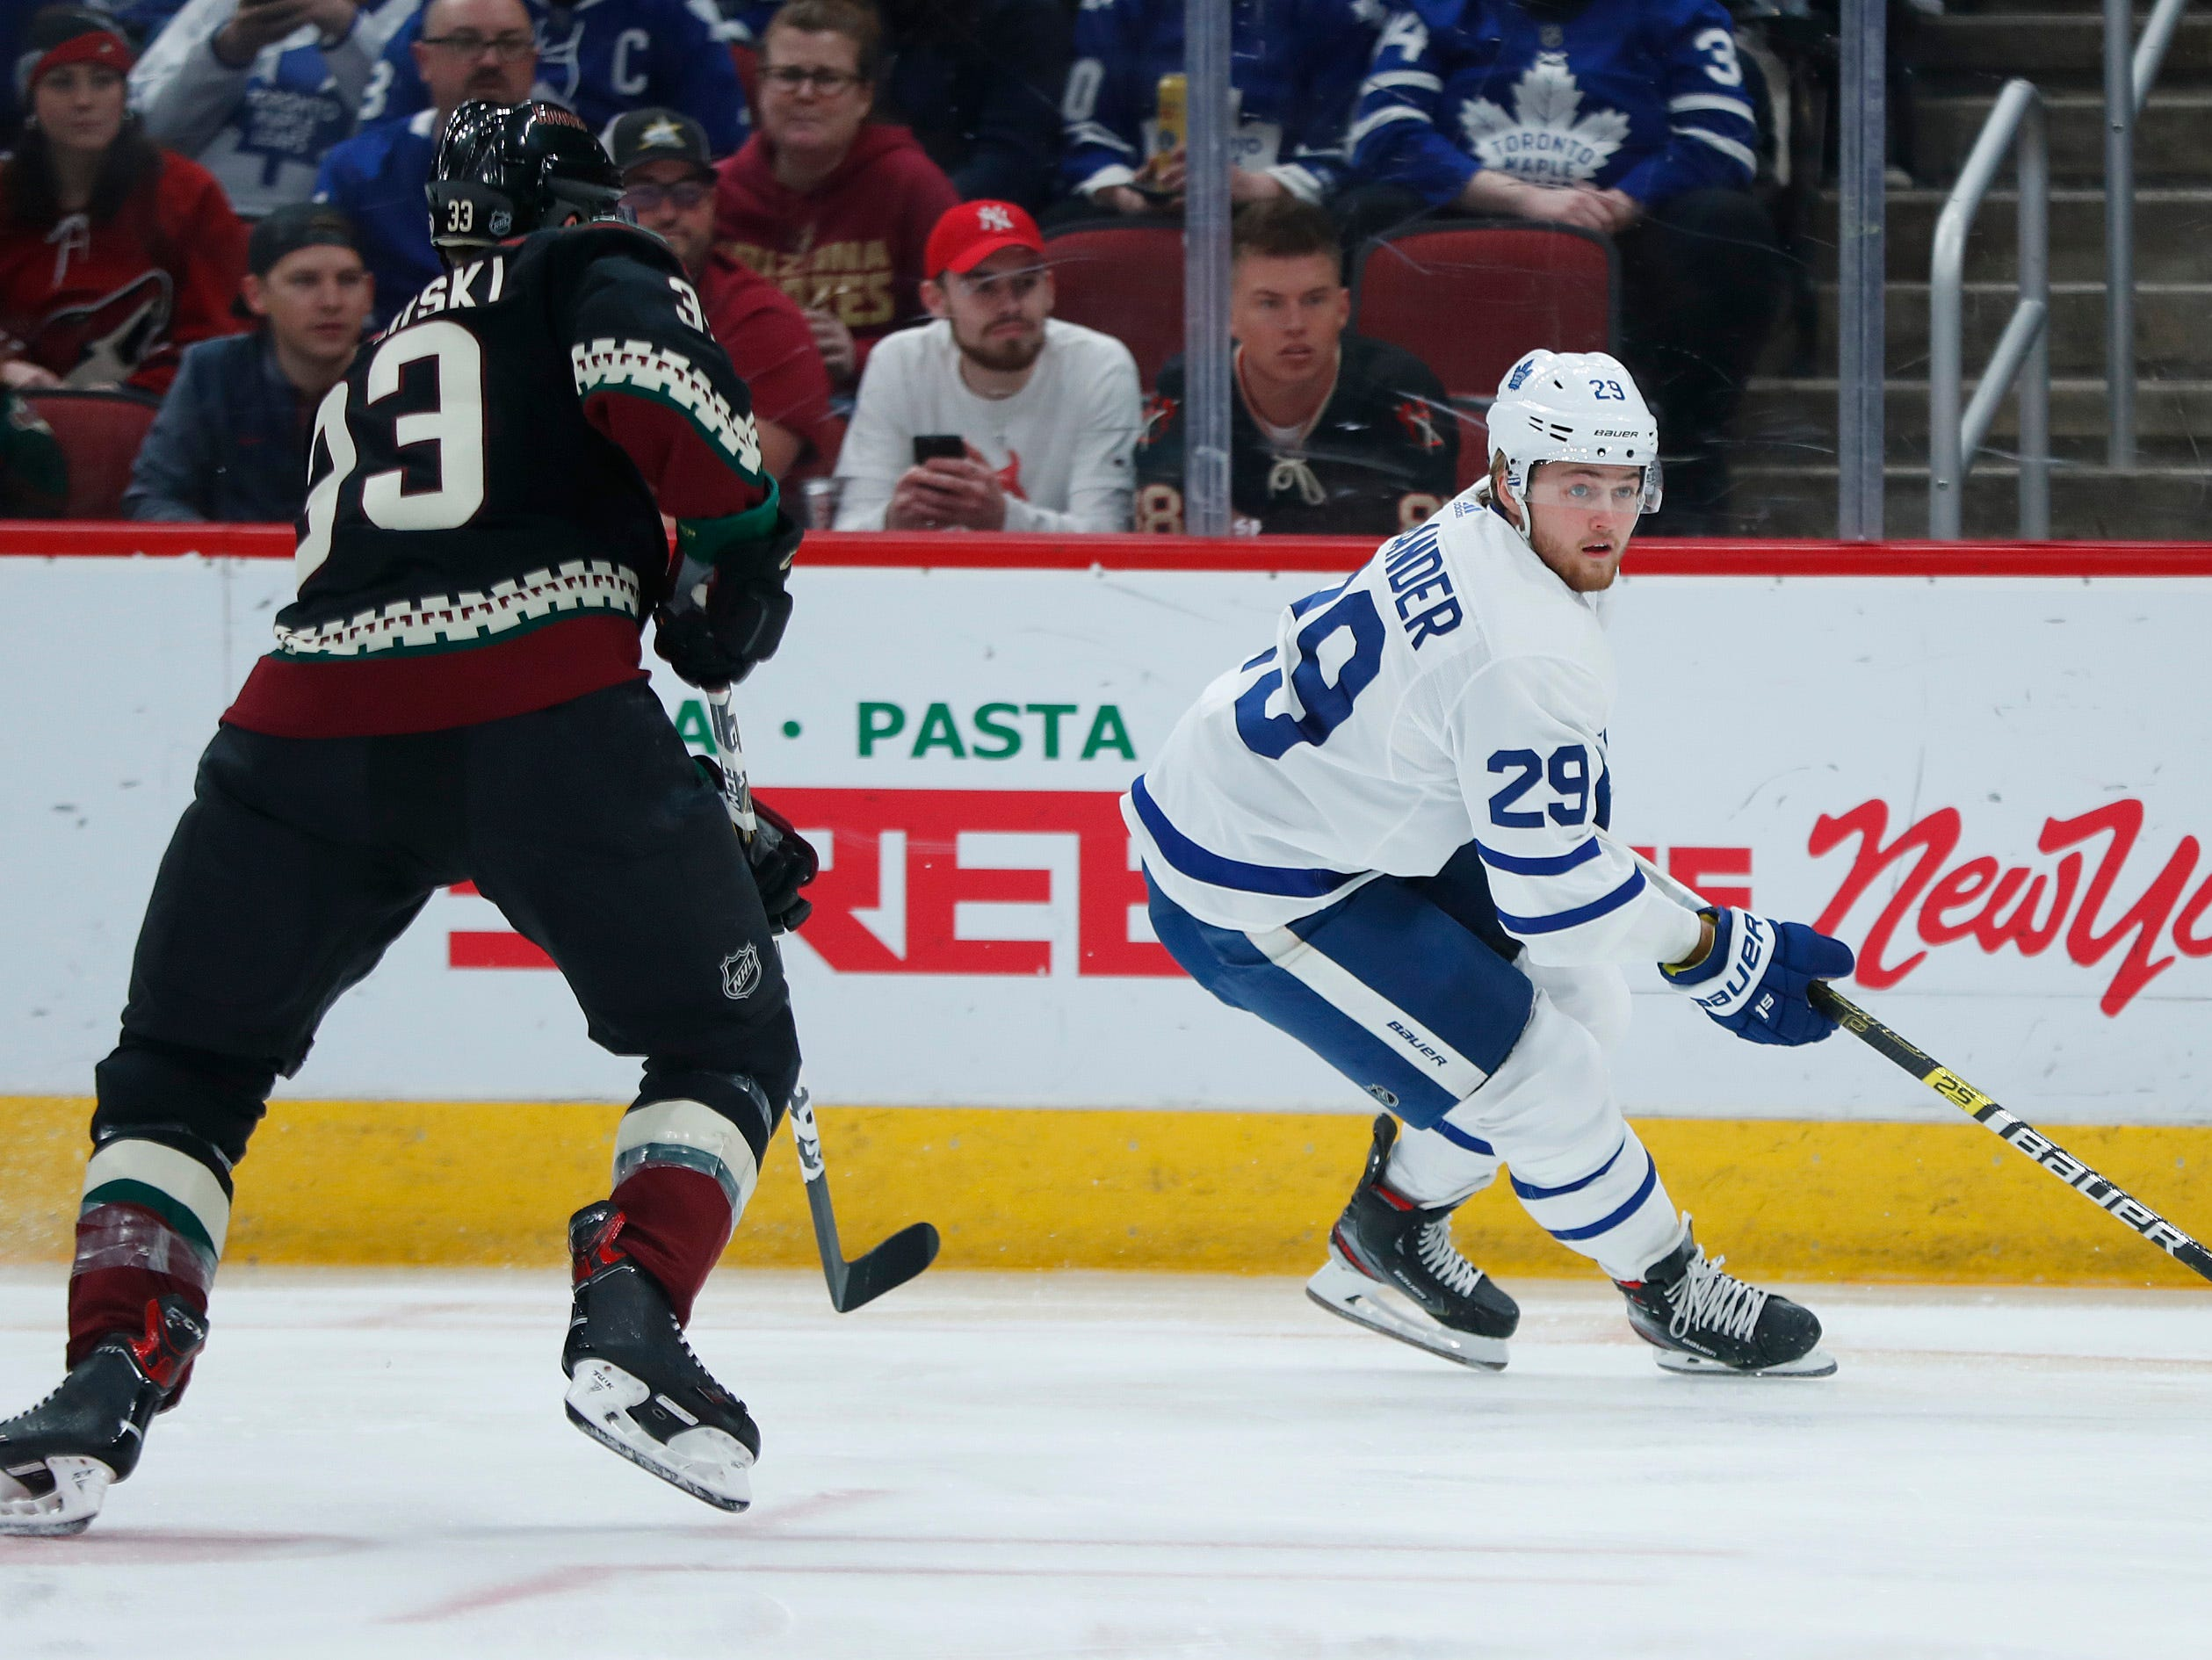 Maple Leafs' William Nylander (29) looks for teammates against a charging Coyotes' Alex Goligoski (33) during the first period at Gila River Arena in Glendale, Ariz. on February 16, 2019.